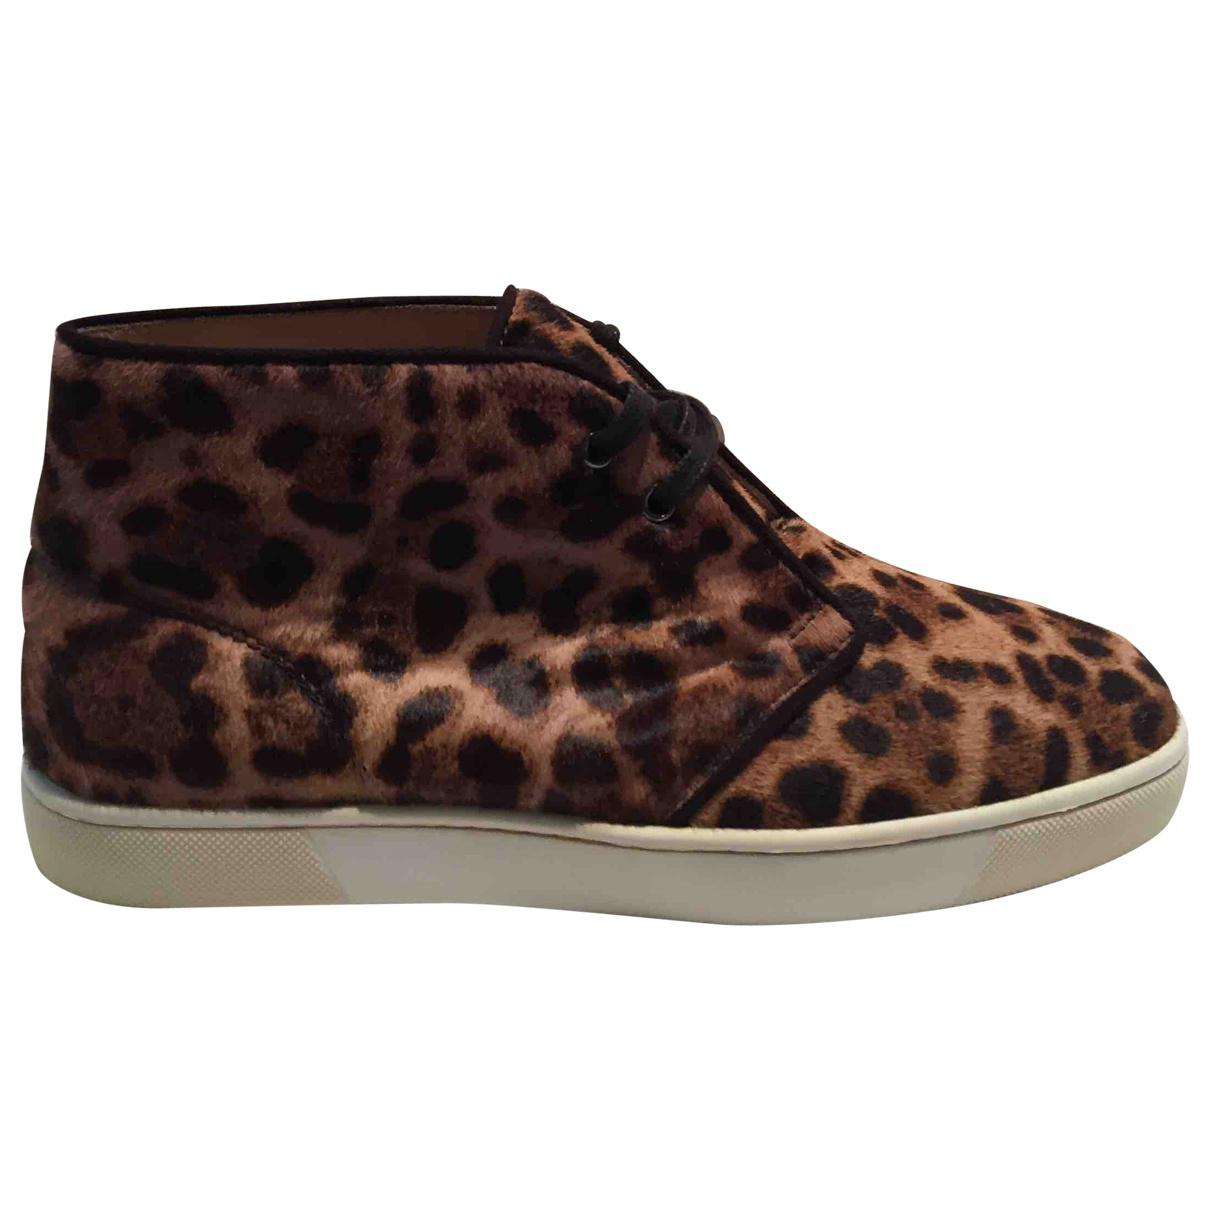 Pre-owned - High trainers Christian Louboutin T6nWxi